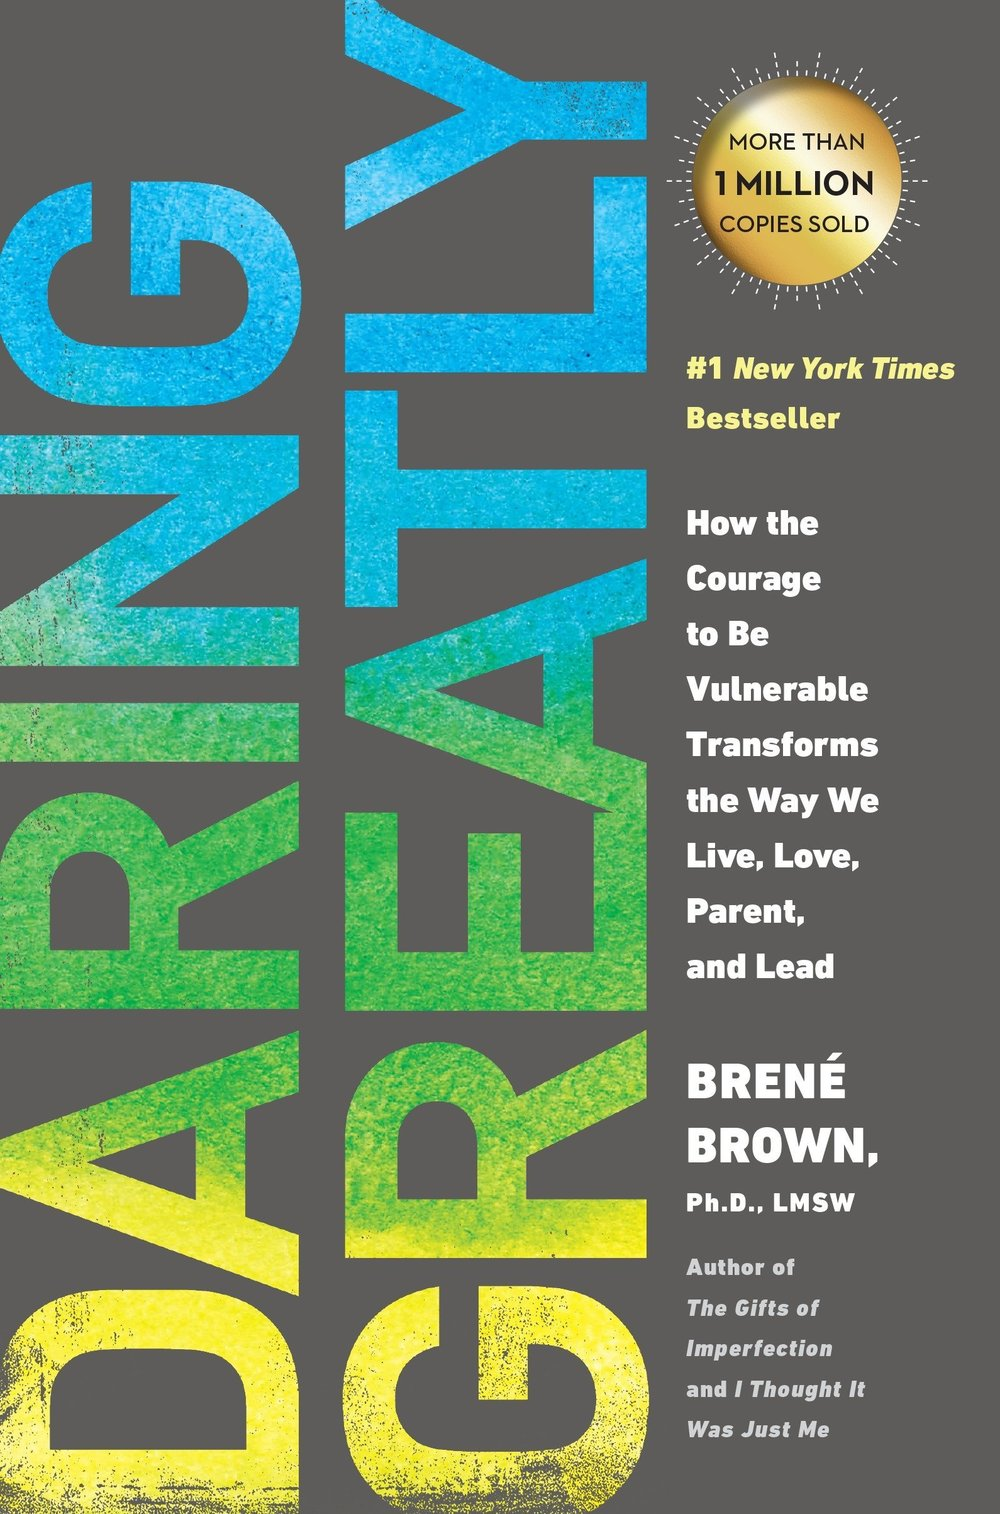 November 12 - Daring Greatly by Brené Brown[leaping forward]